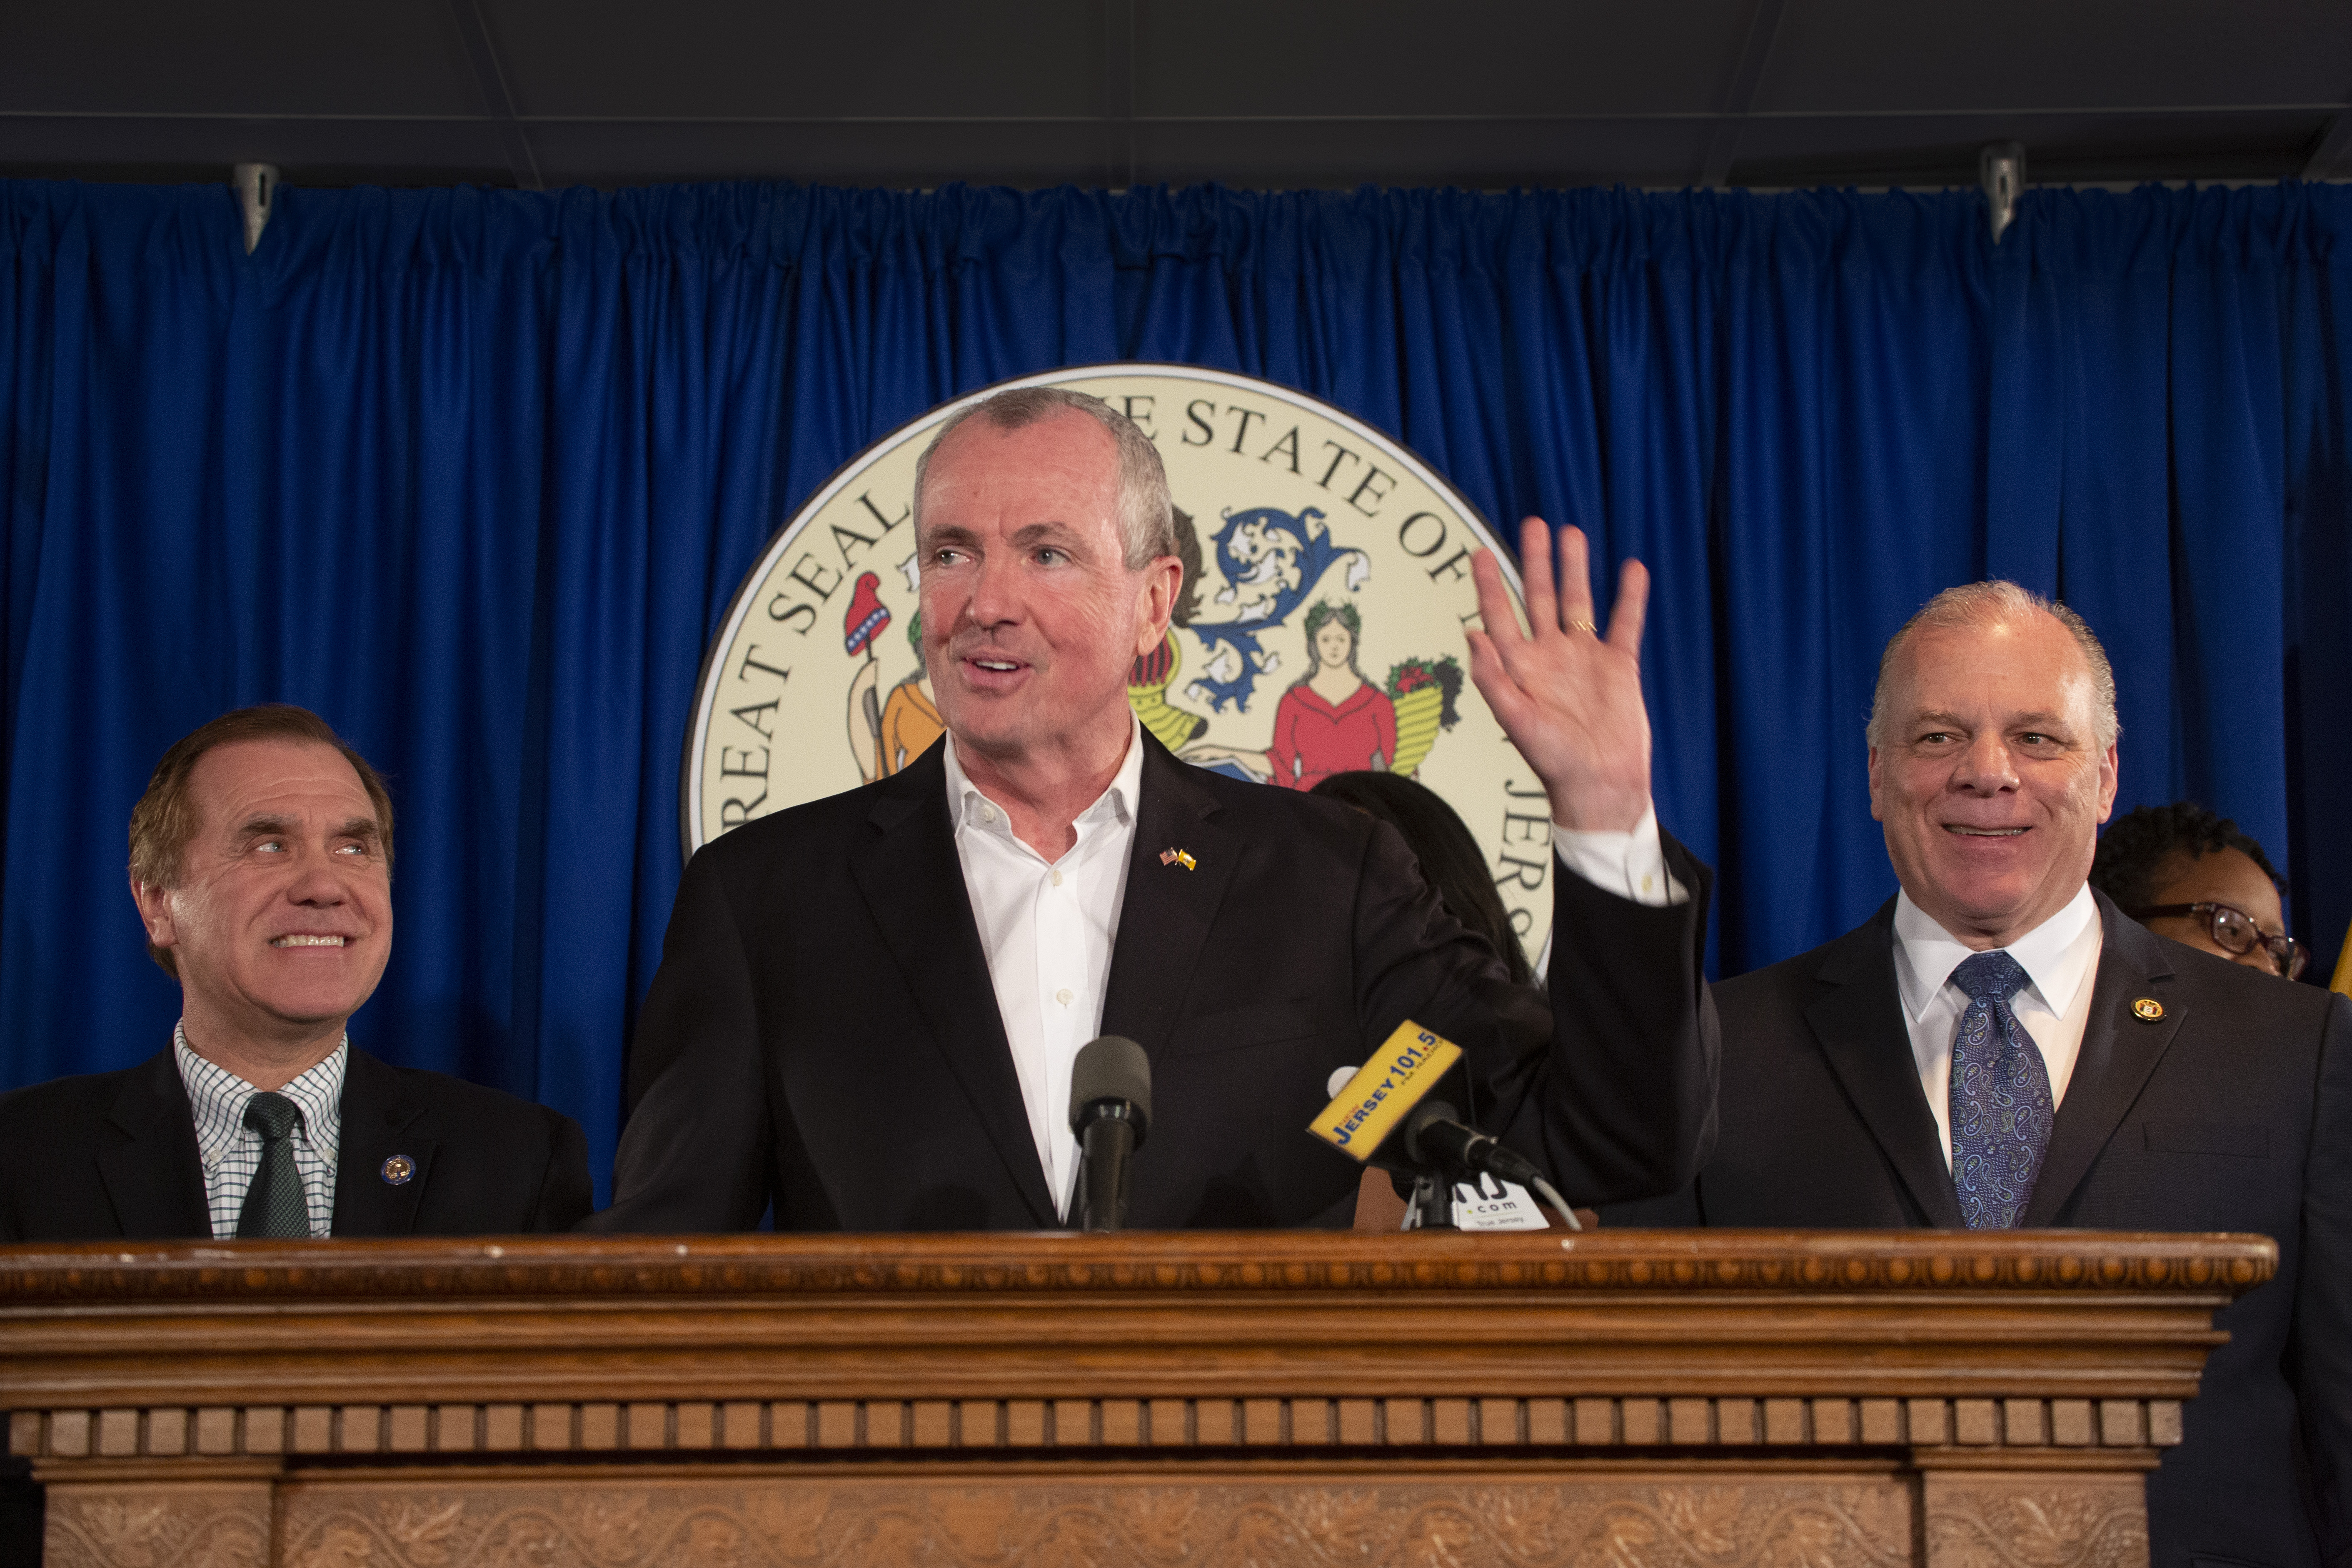 Murphy responds to Democrats rejecting his demand for a millionaires tax